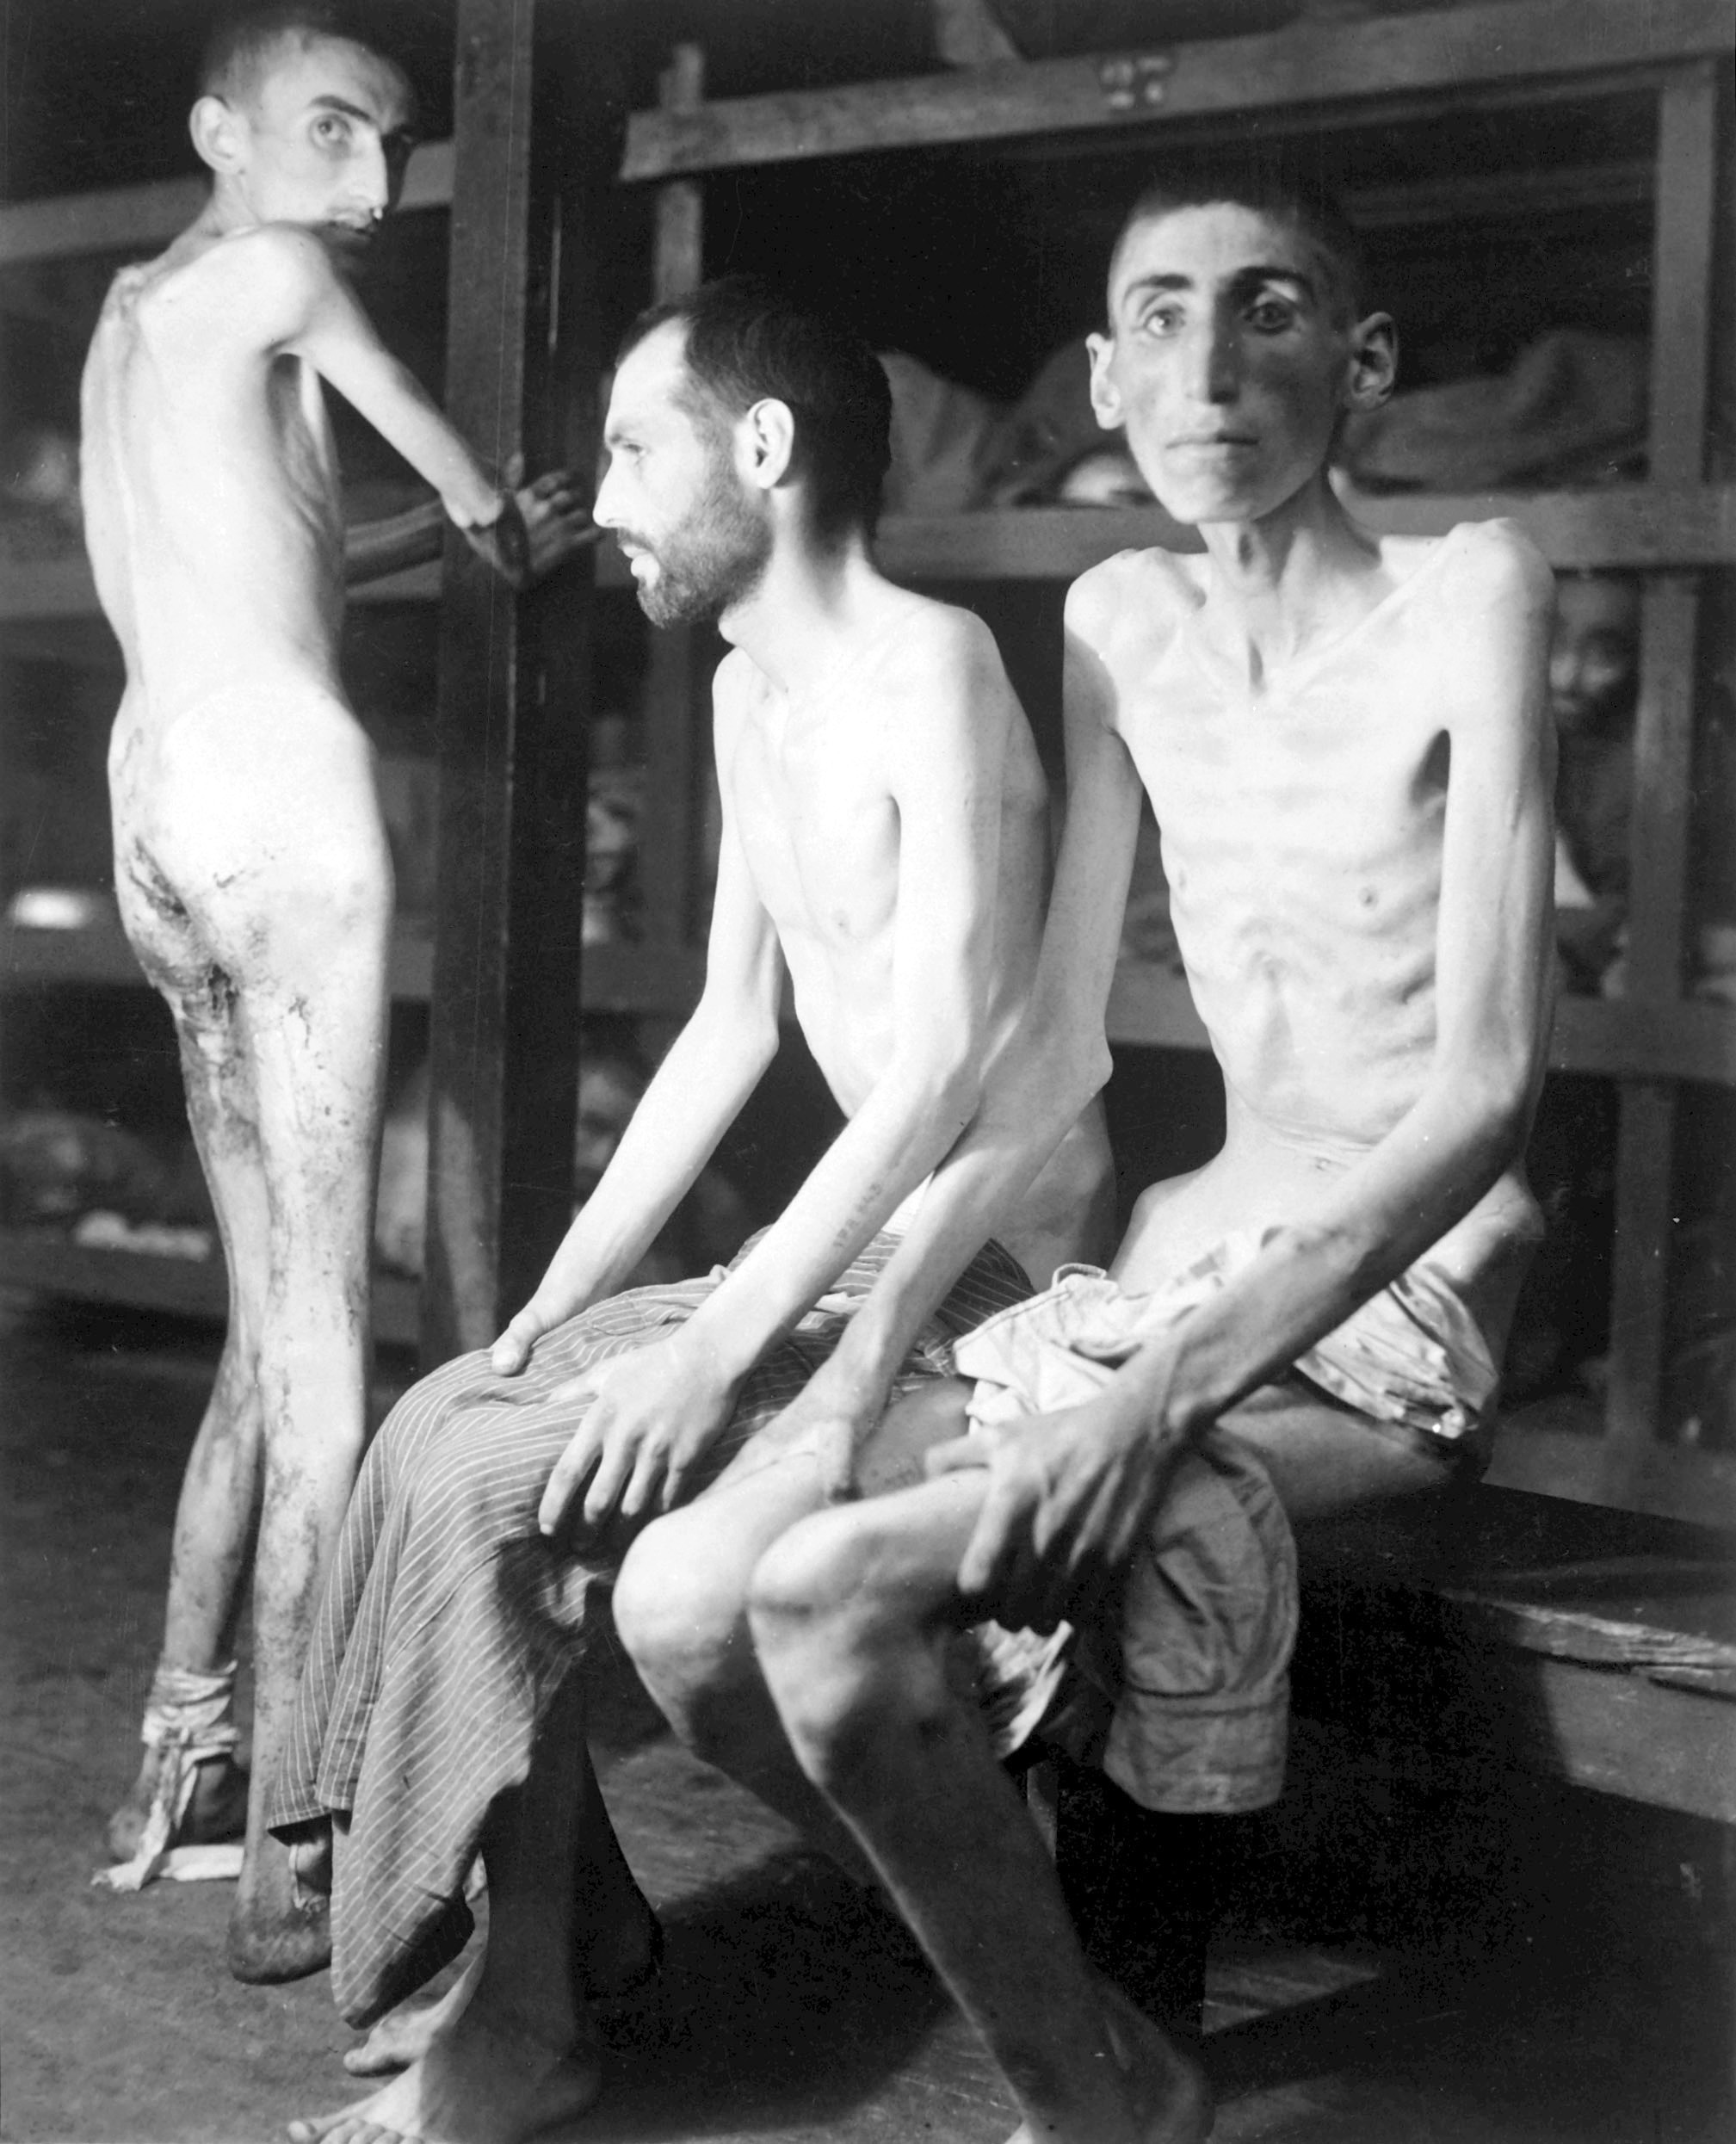 https://upload.wikimedia.org/wikipedia/commons/b/bc/Slave_laborers_at_Buchenwald.jpg